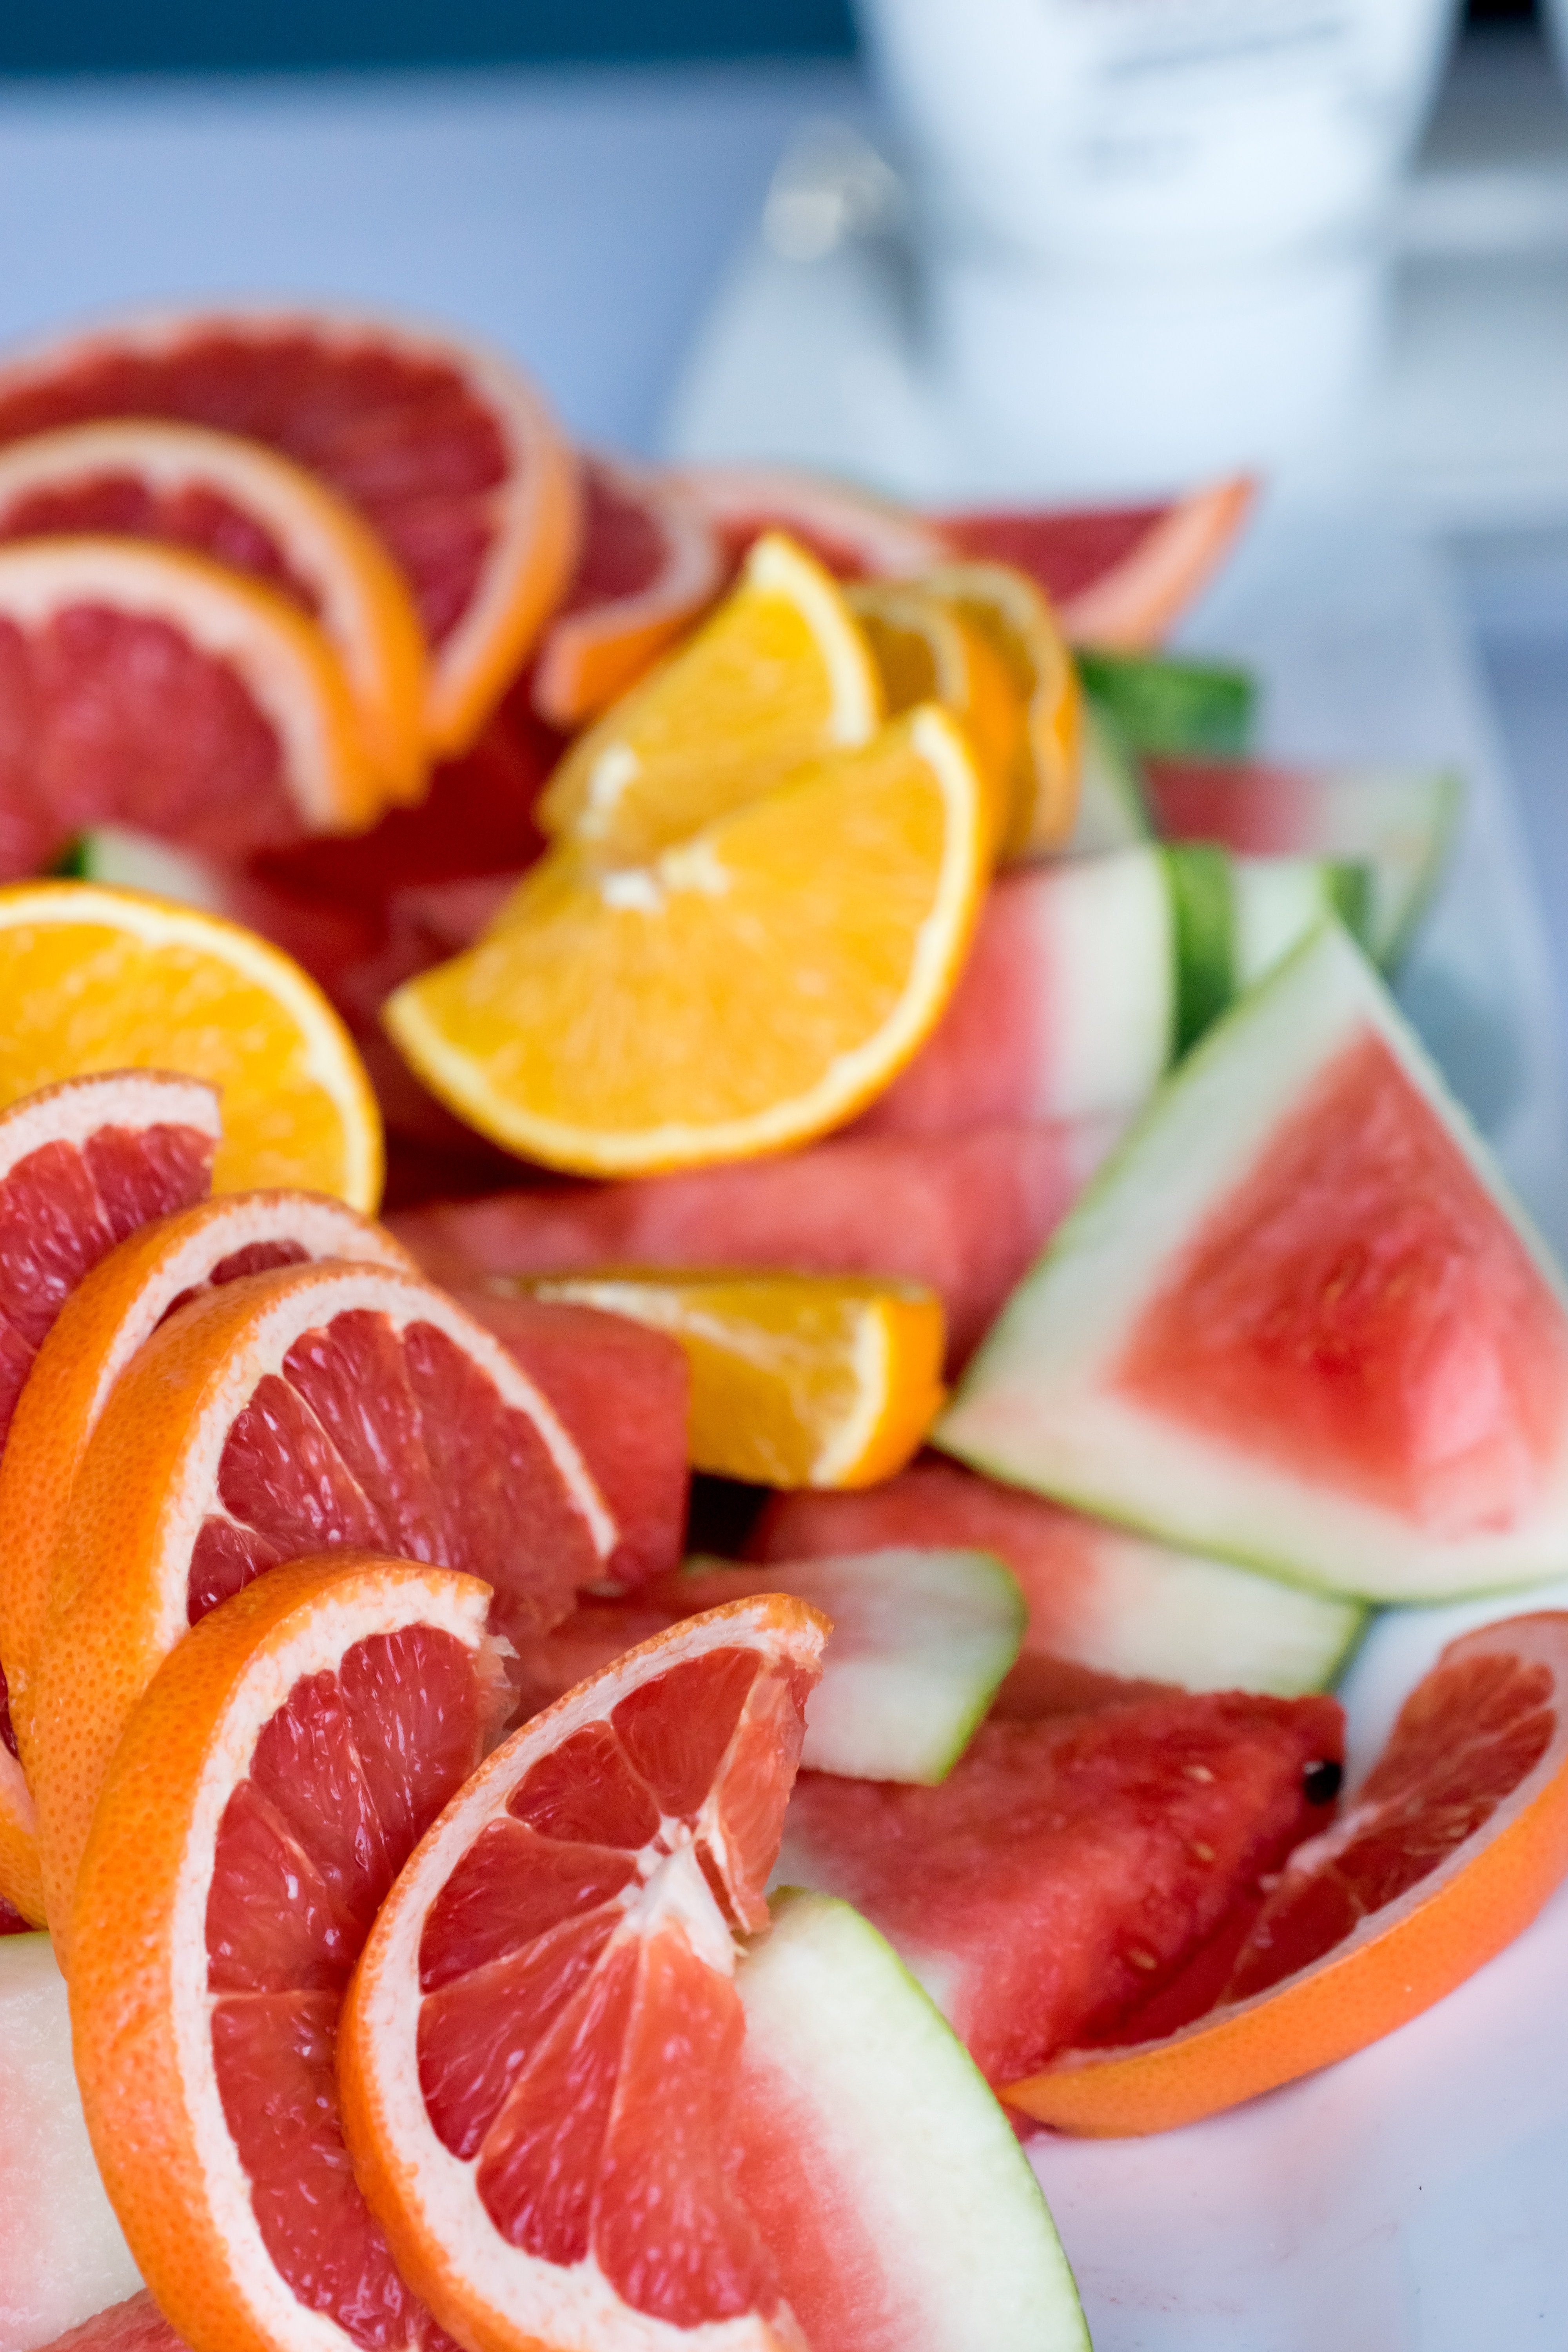 sliced citrus and melons